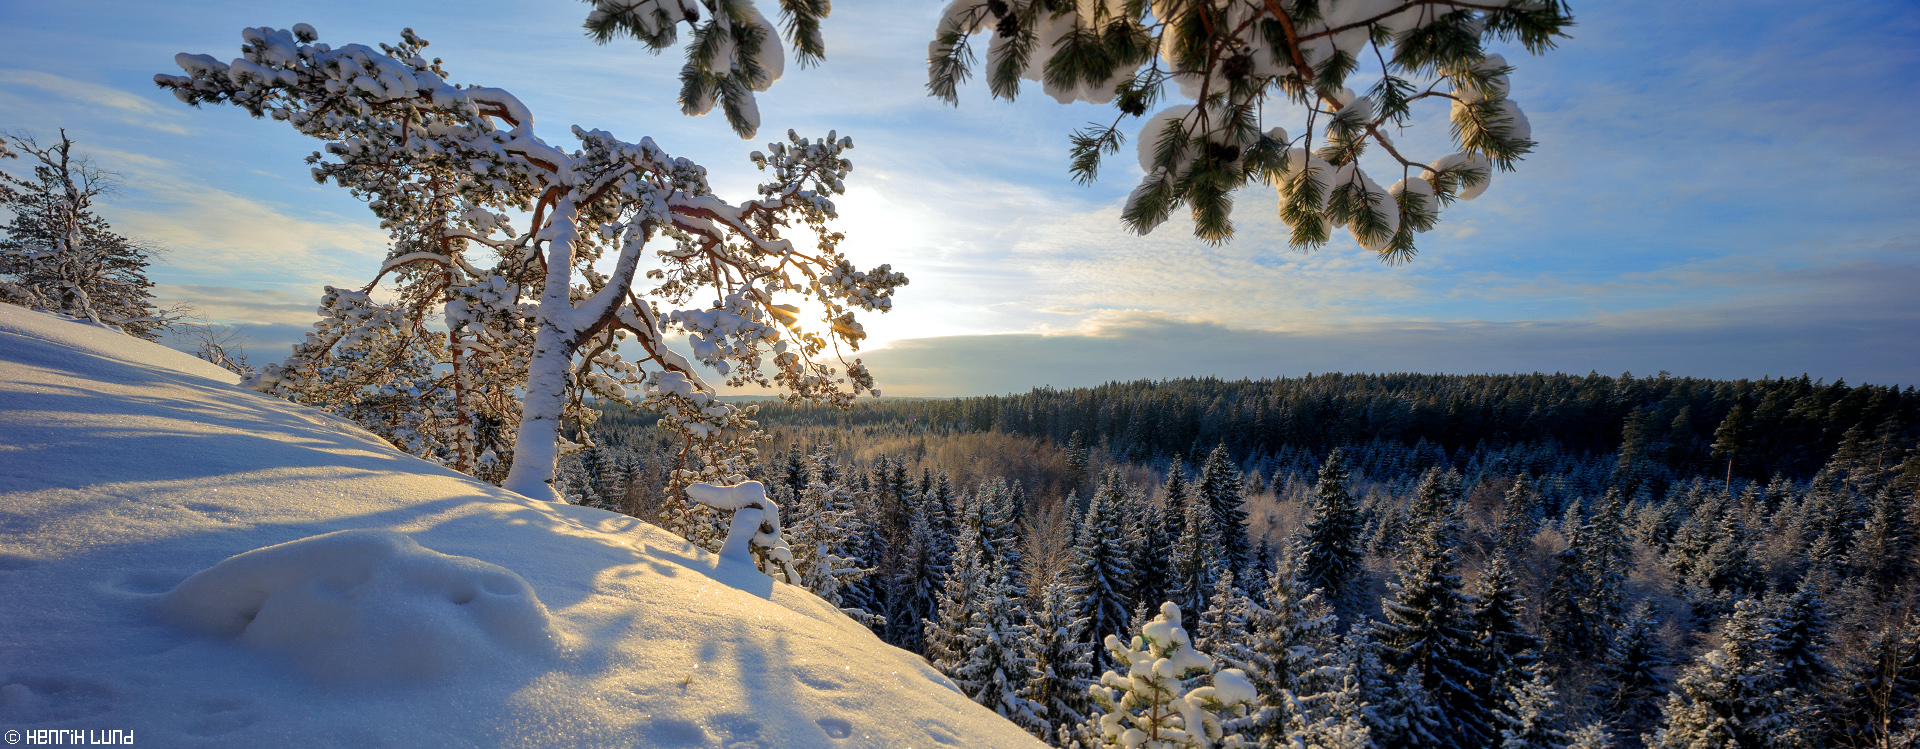 Backlit snowy pine viewed from Falkberget in Norrby, Lappträsk, Finland. January 2016.